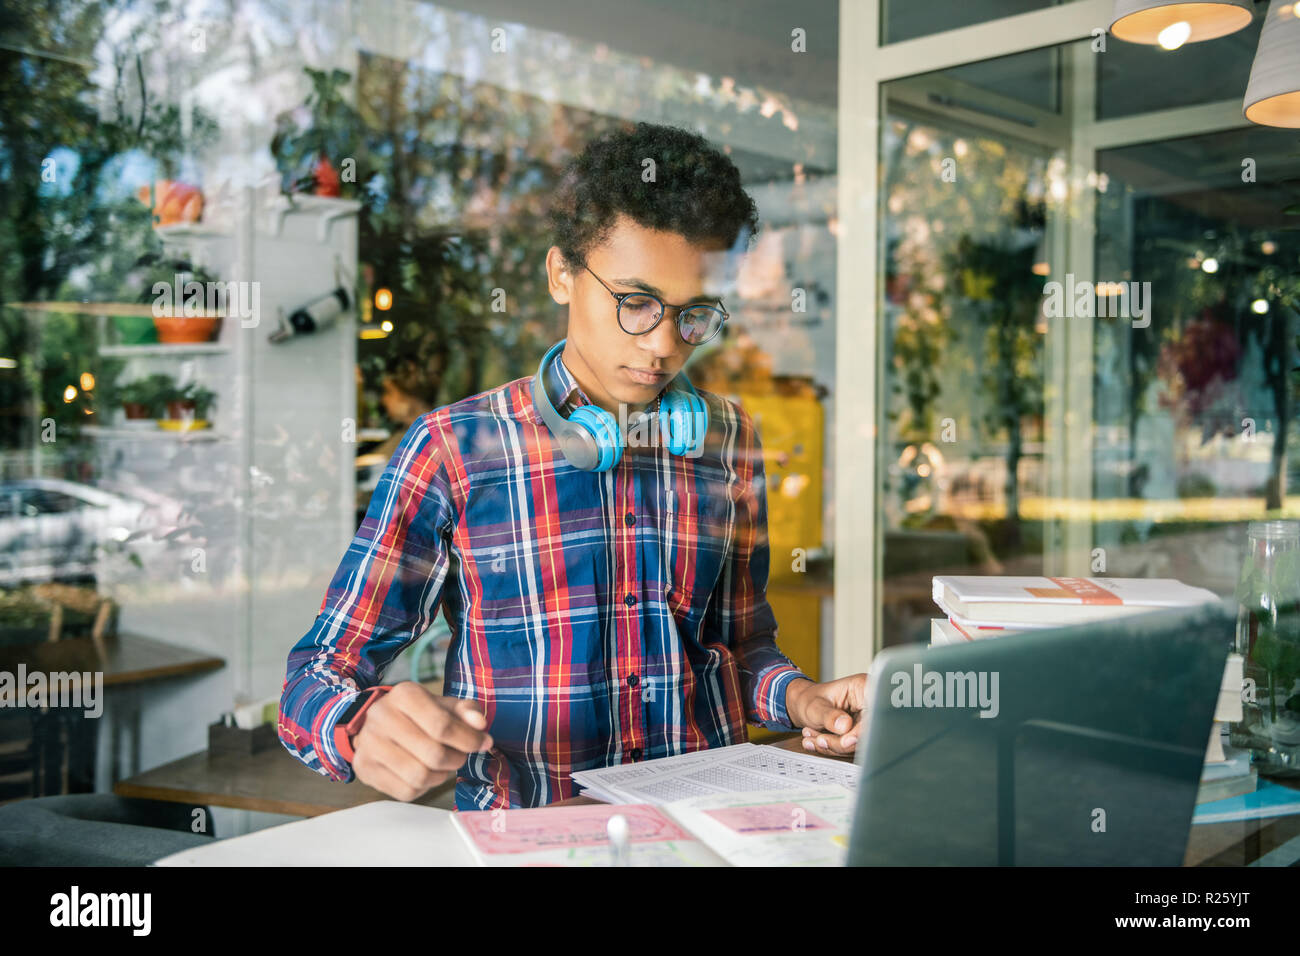 Serious young boy focusing on his school task - Stock Image